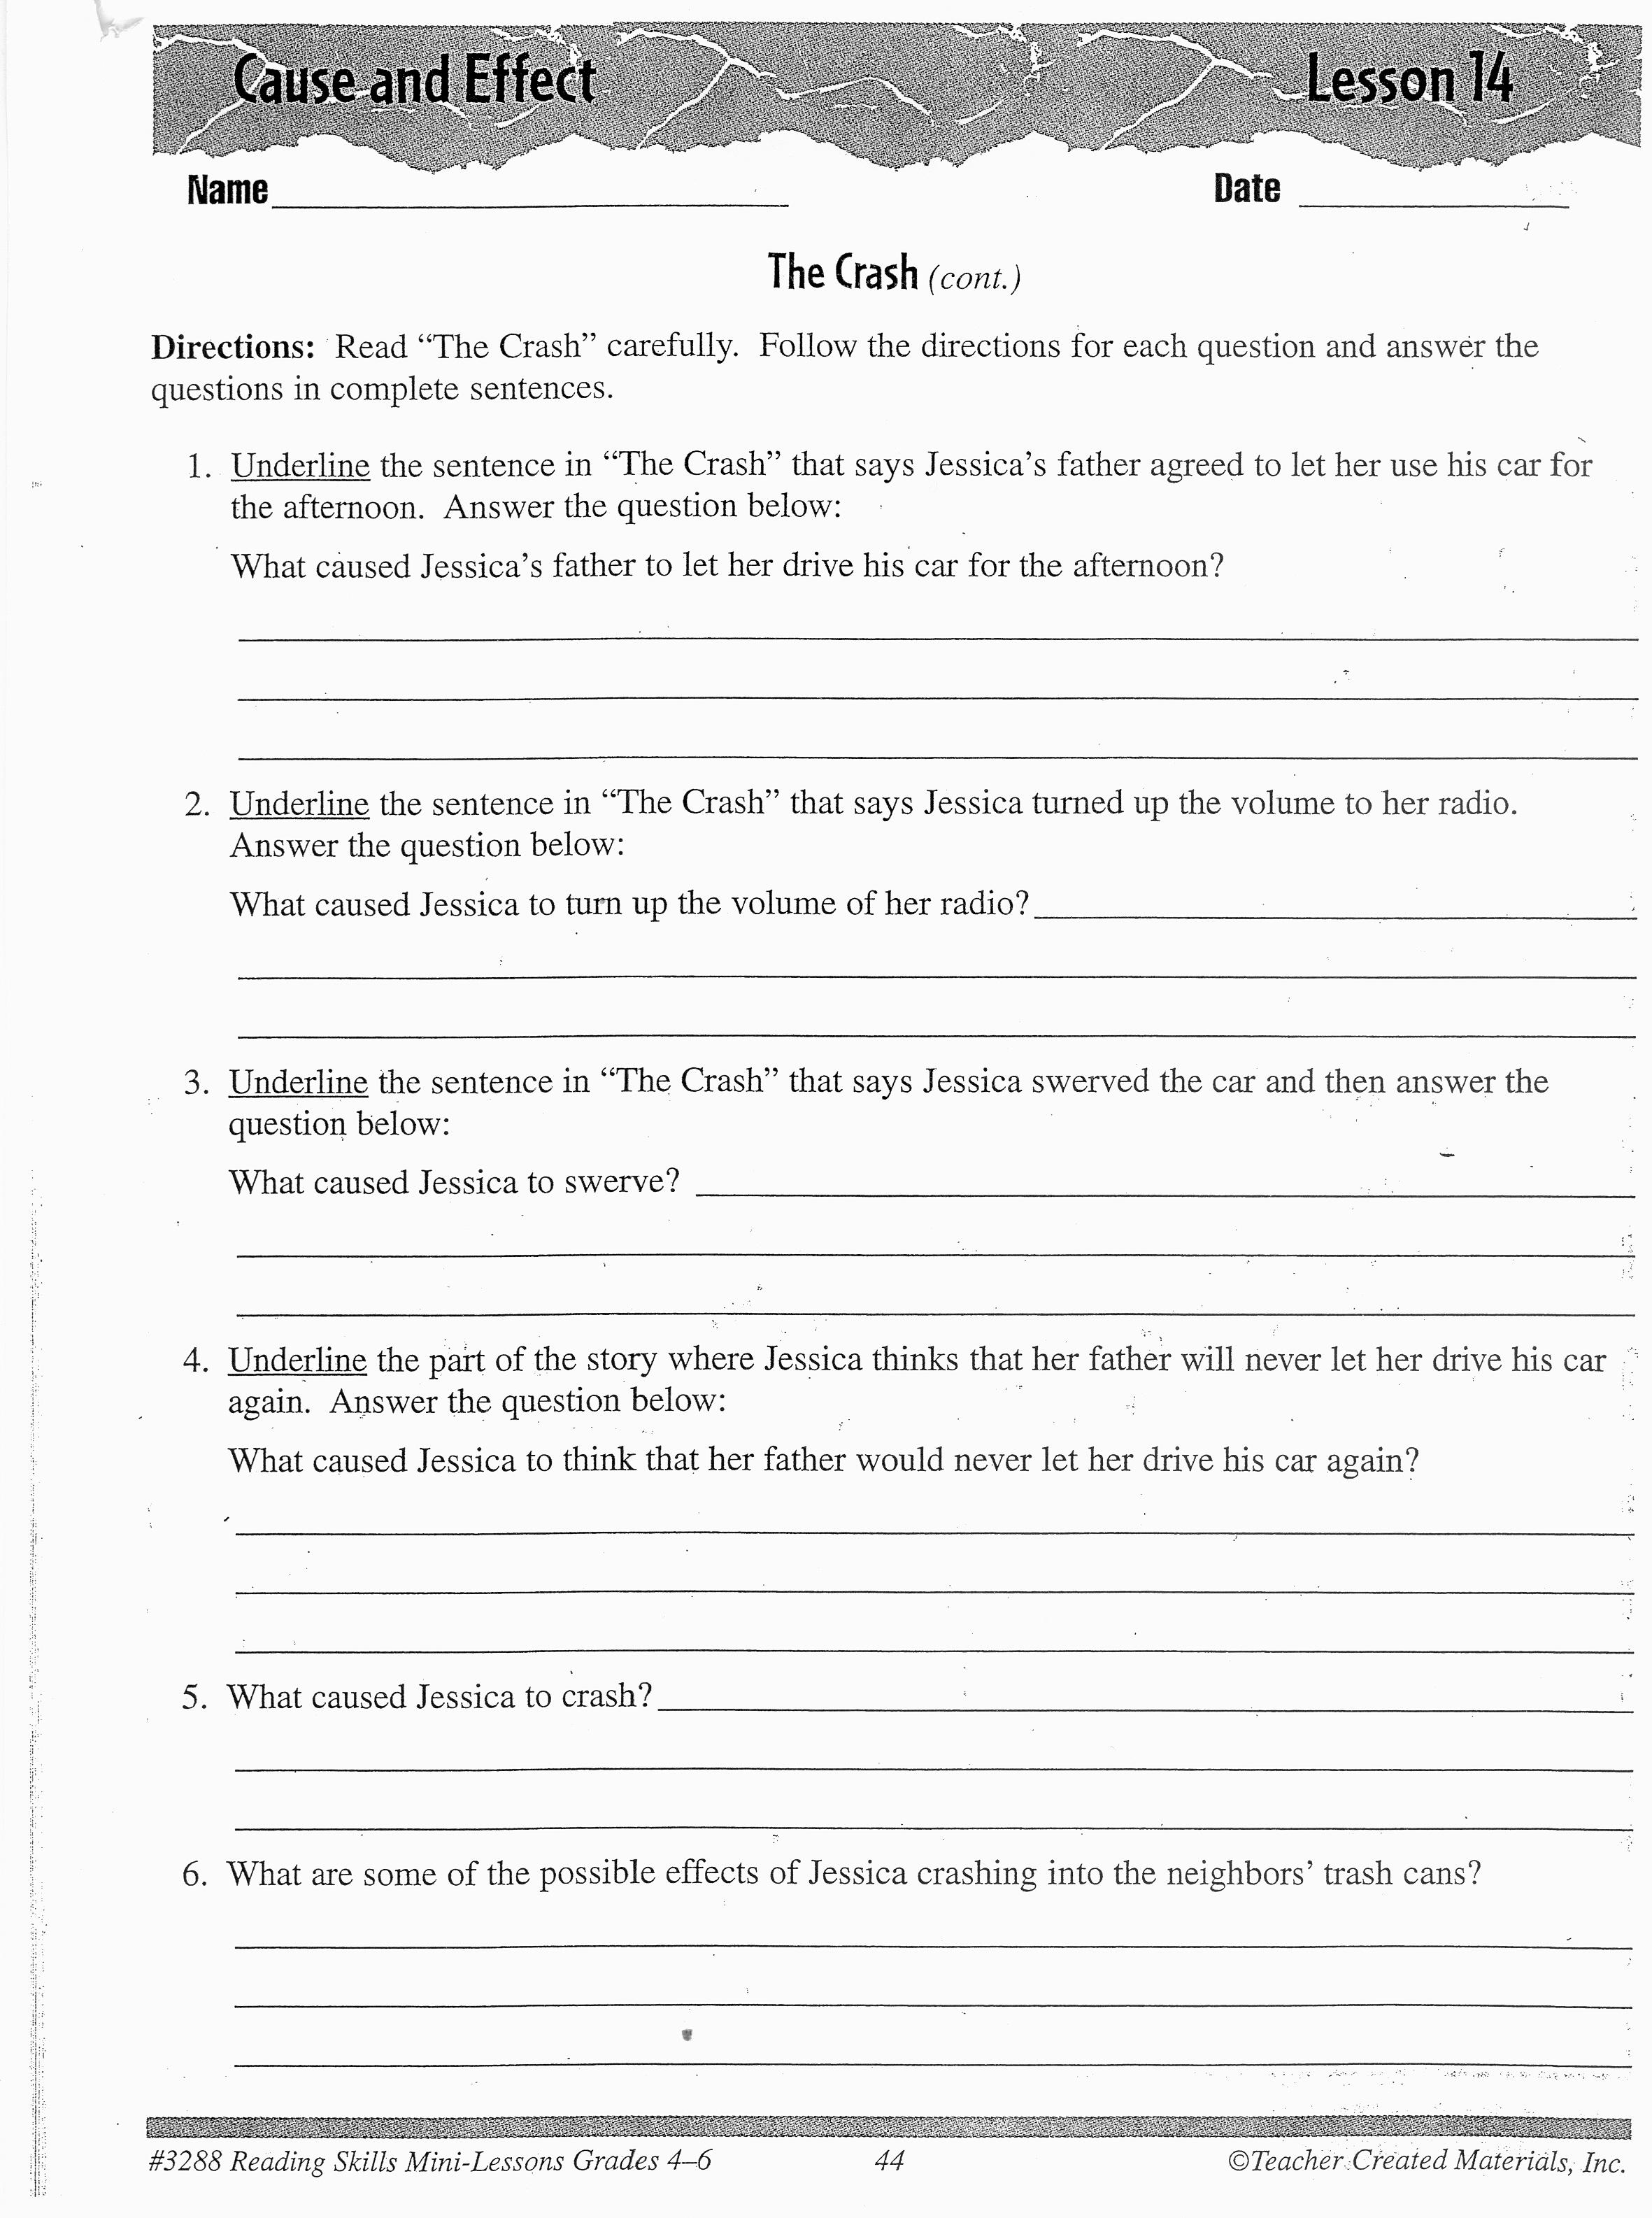 Cause And Effect Worksheet High School